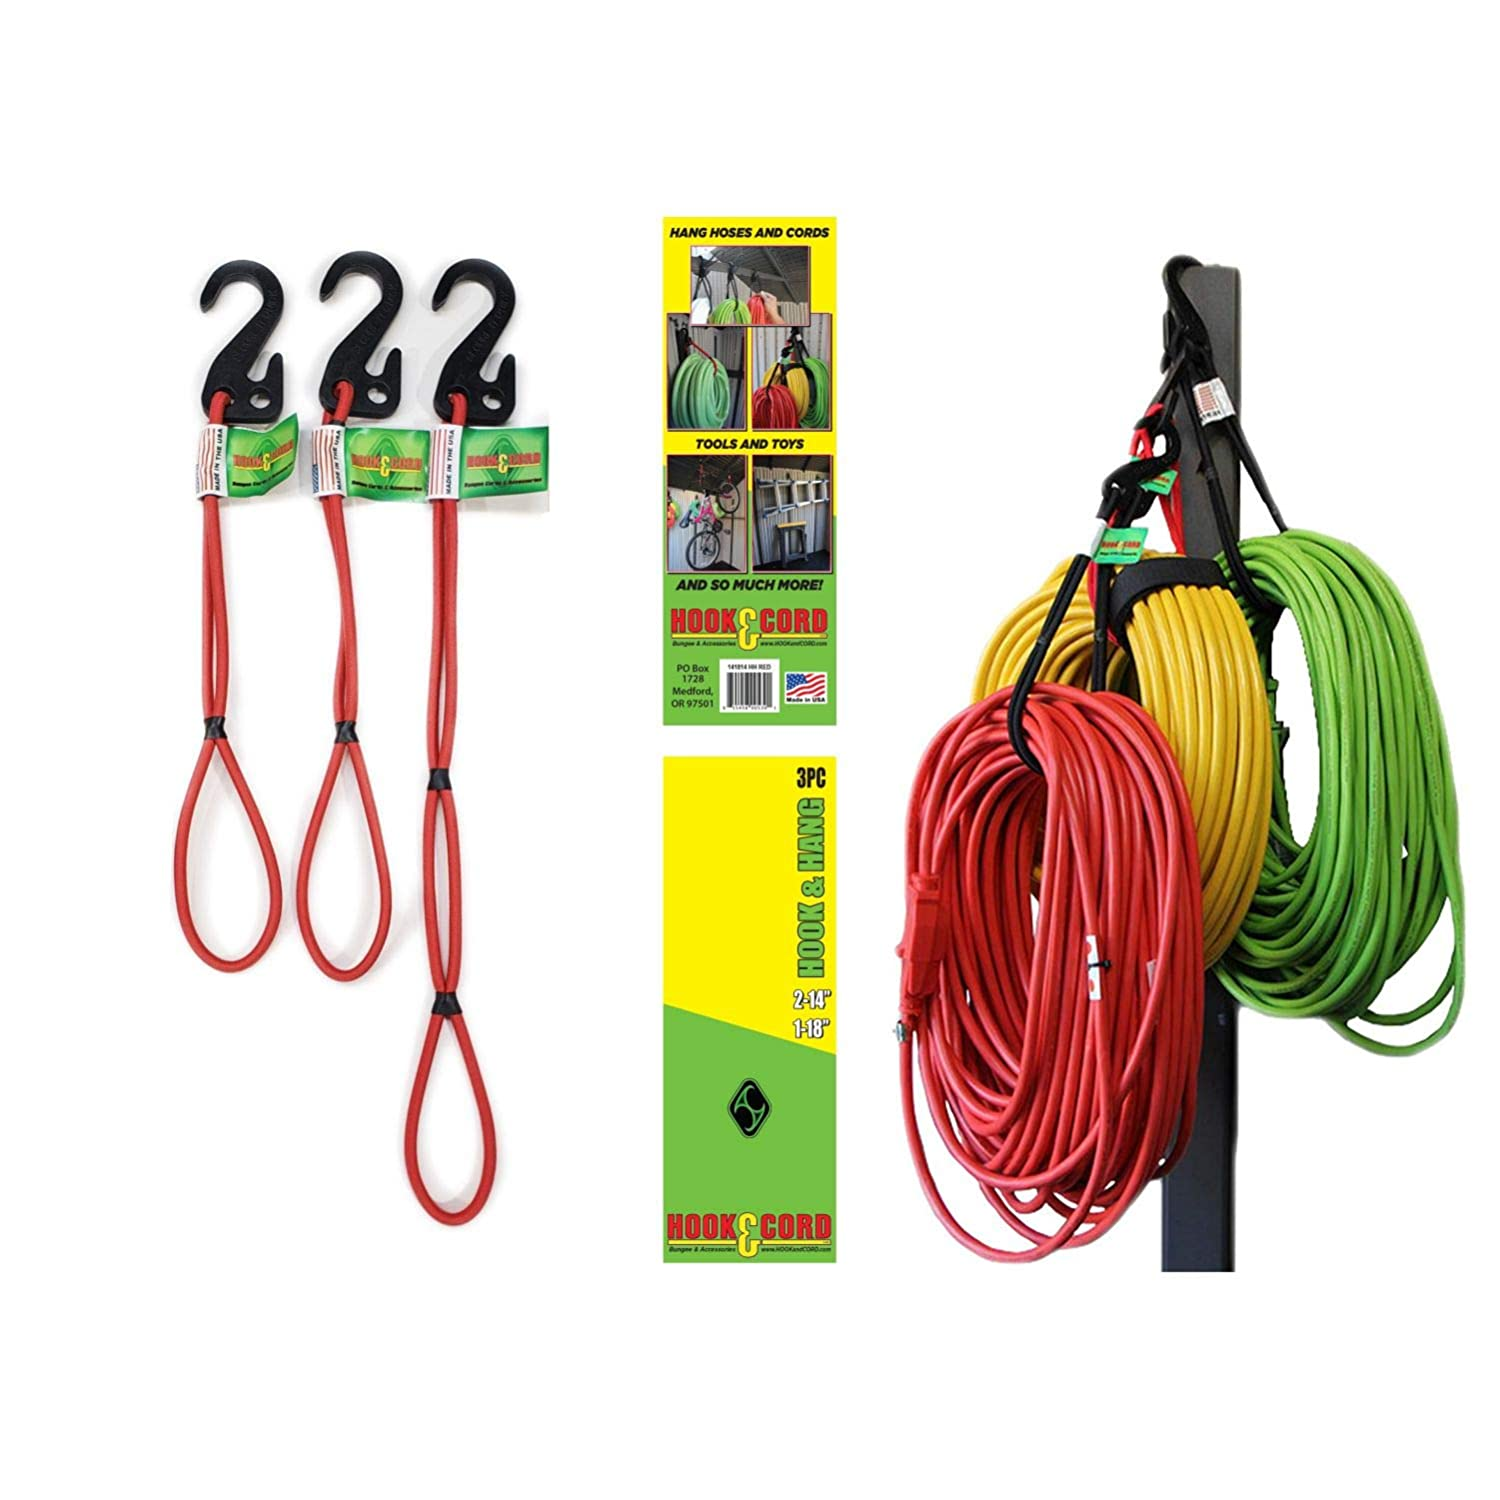 Hook Hang Storage Organizer Cords PACK of 3 Hook Hang tools almost anywhere Also Hang Hoses Cords Ladders Brooms Shovels Bikes More. An Incredible Organizer Red